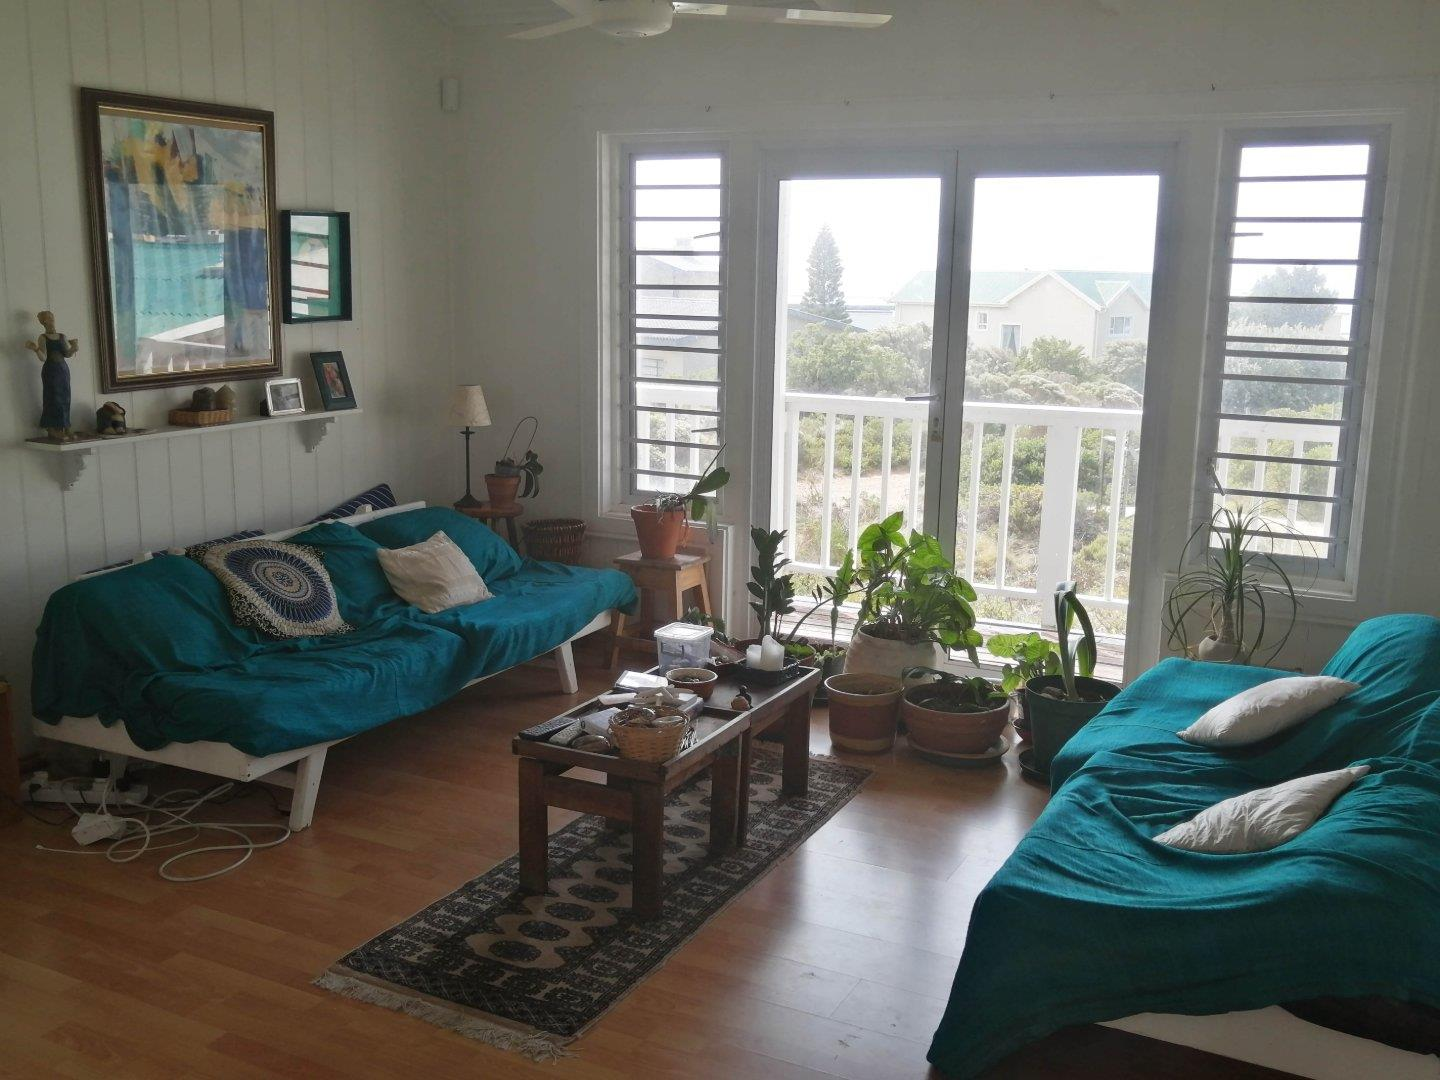 2 Bedroom House For Sale in Rooi Els